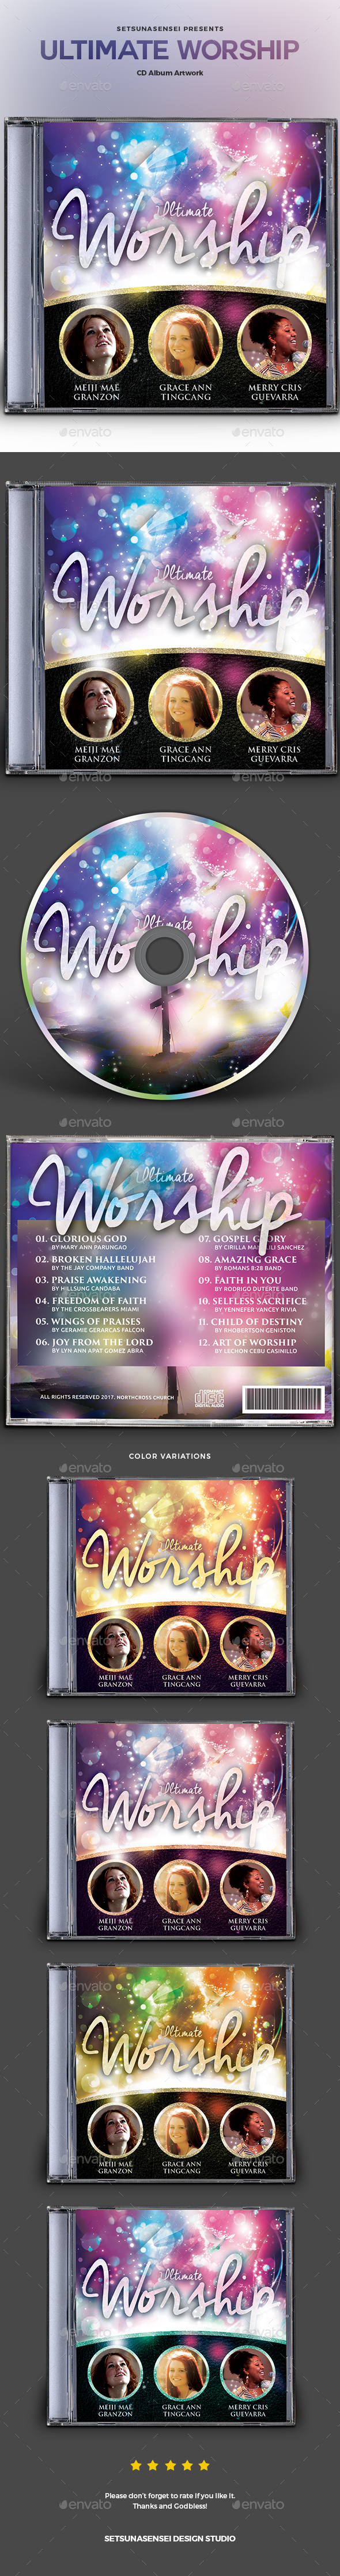 Ultimate Worship CD Album Artwork - CD & DVD Artwork Print Templates